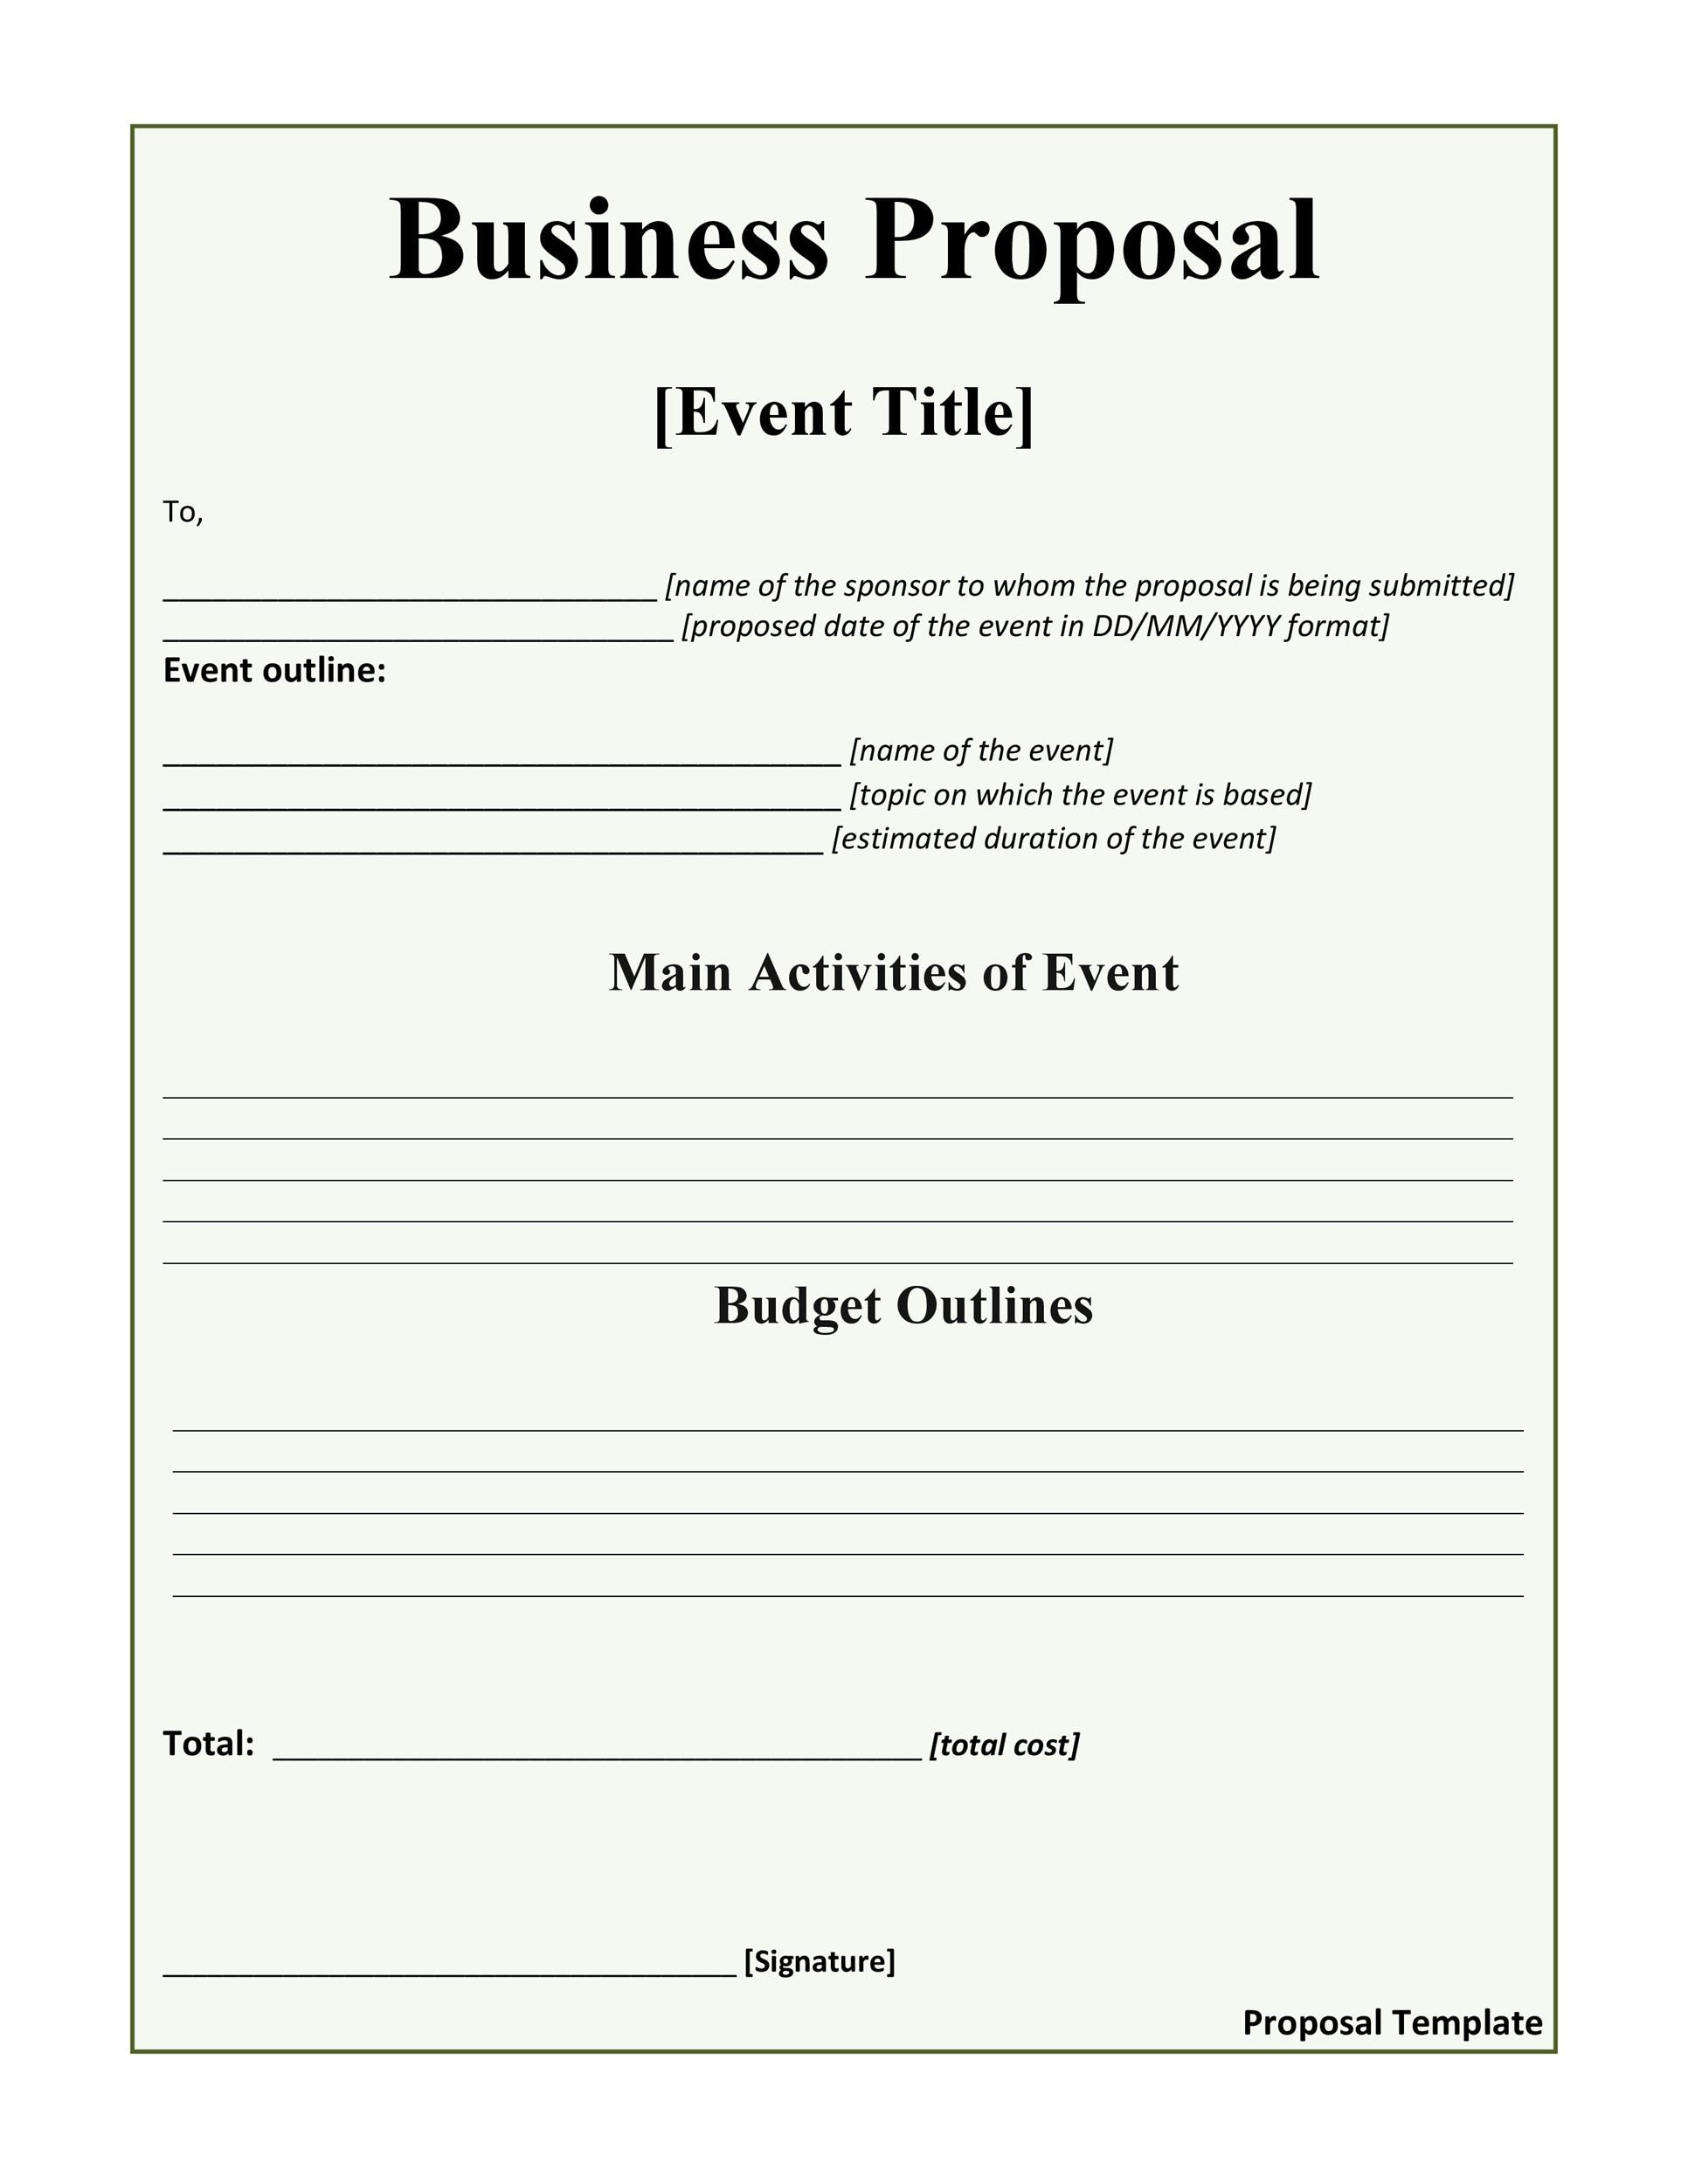 Business Proposal Templates  Proposal Letter Samples